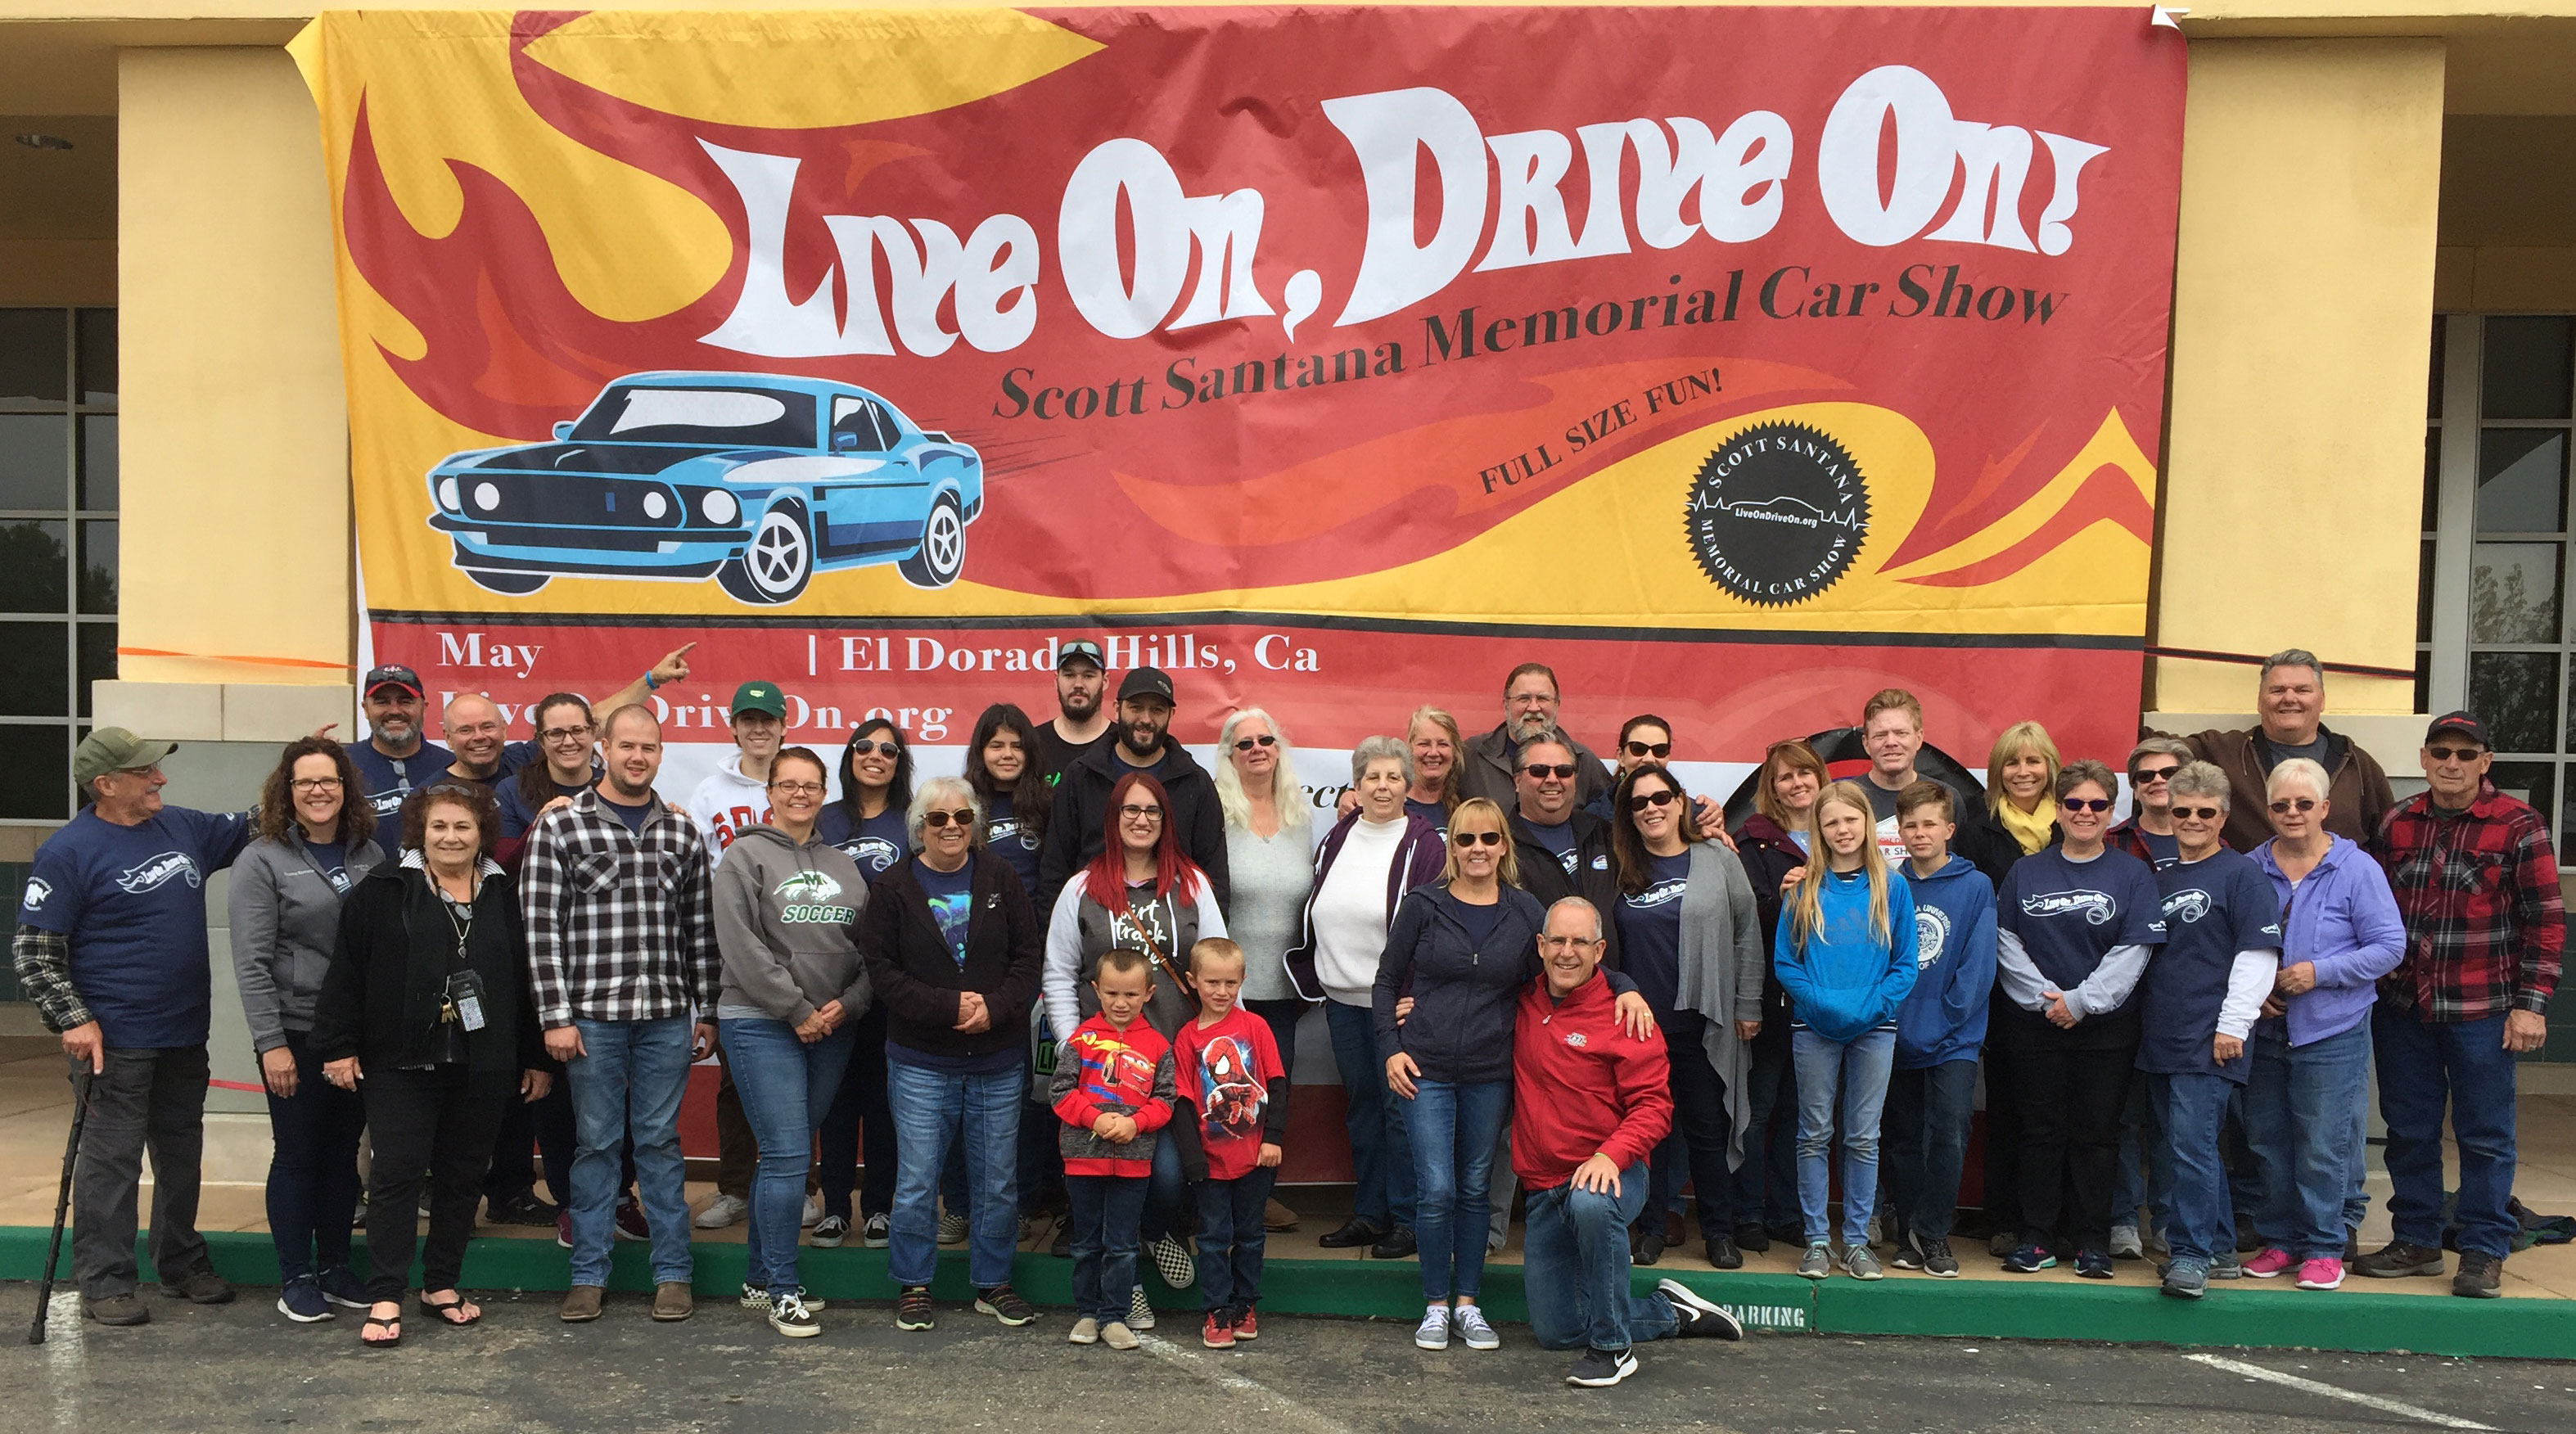 2019 Live On, Drive On! Scott Santana Memorial Car Show Family